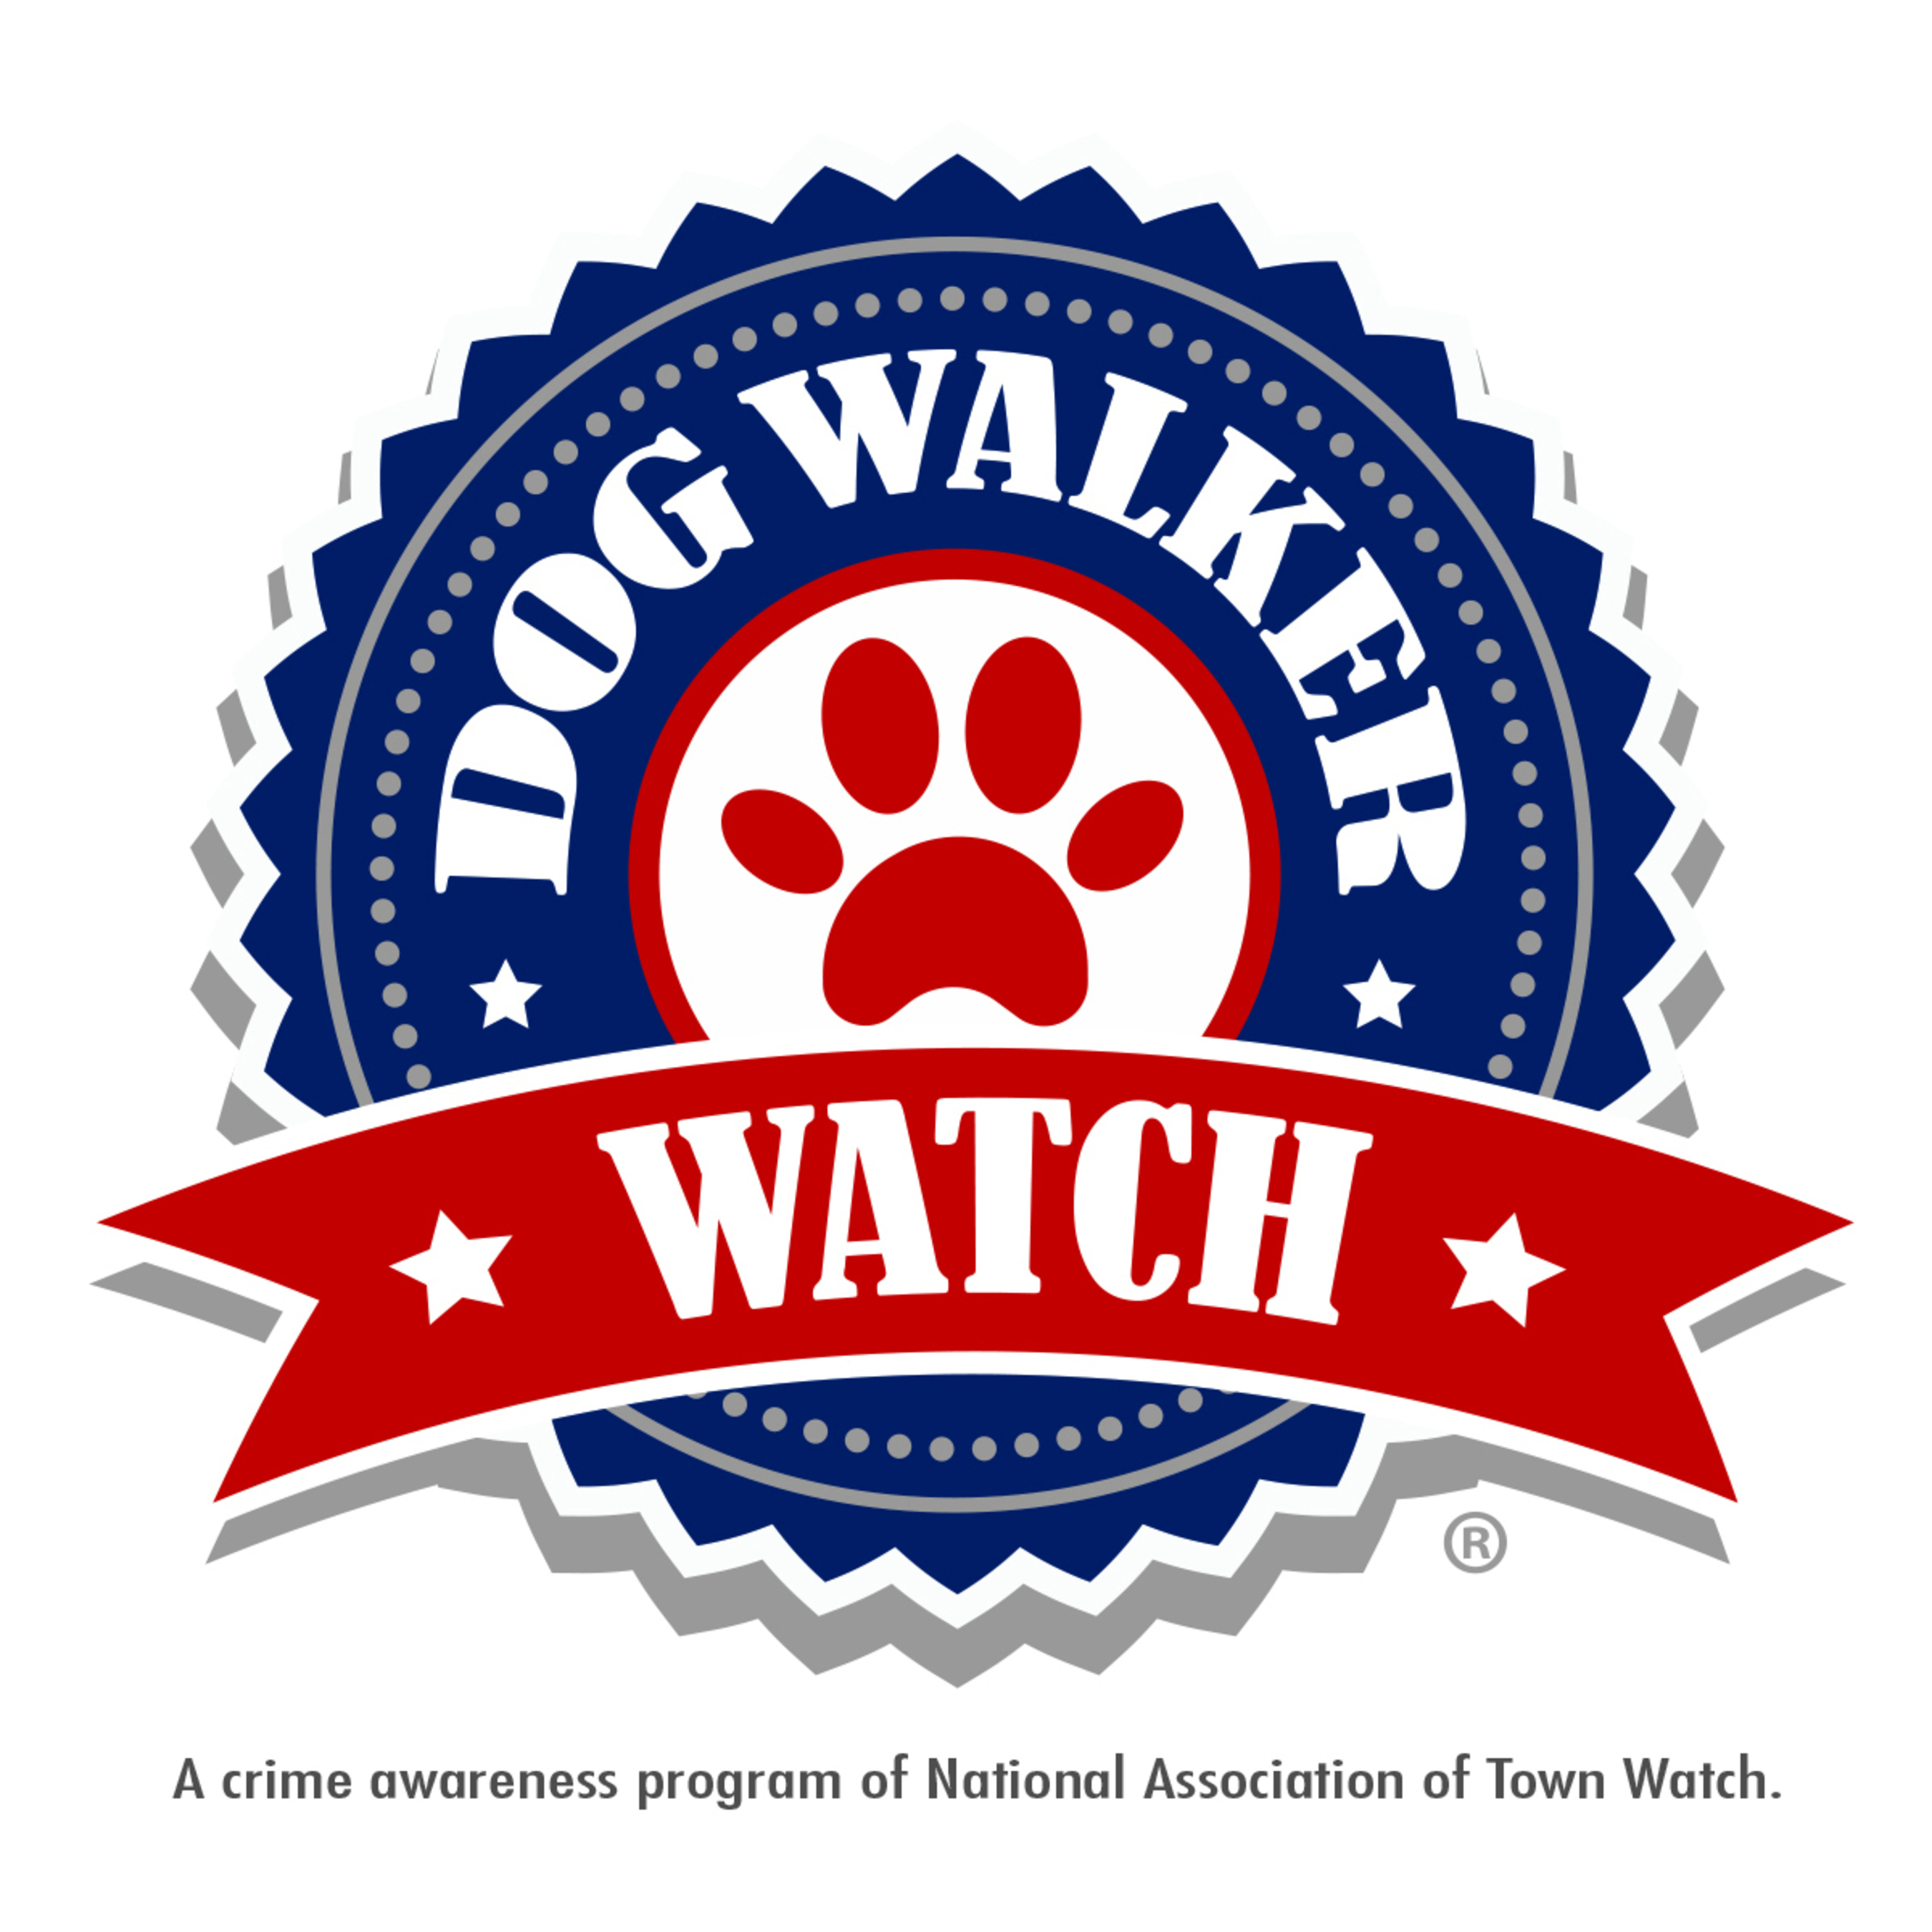 'Dog Walker Watch' Festival - Saturday in Ardmore; Cops, Dogs, Families Join Forces